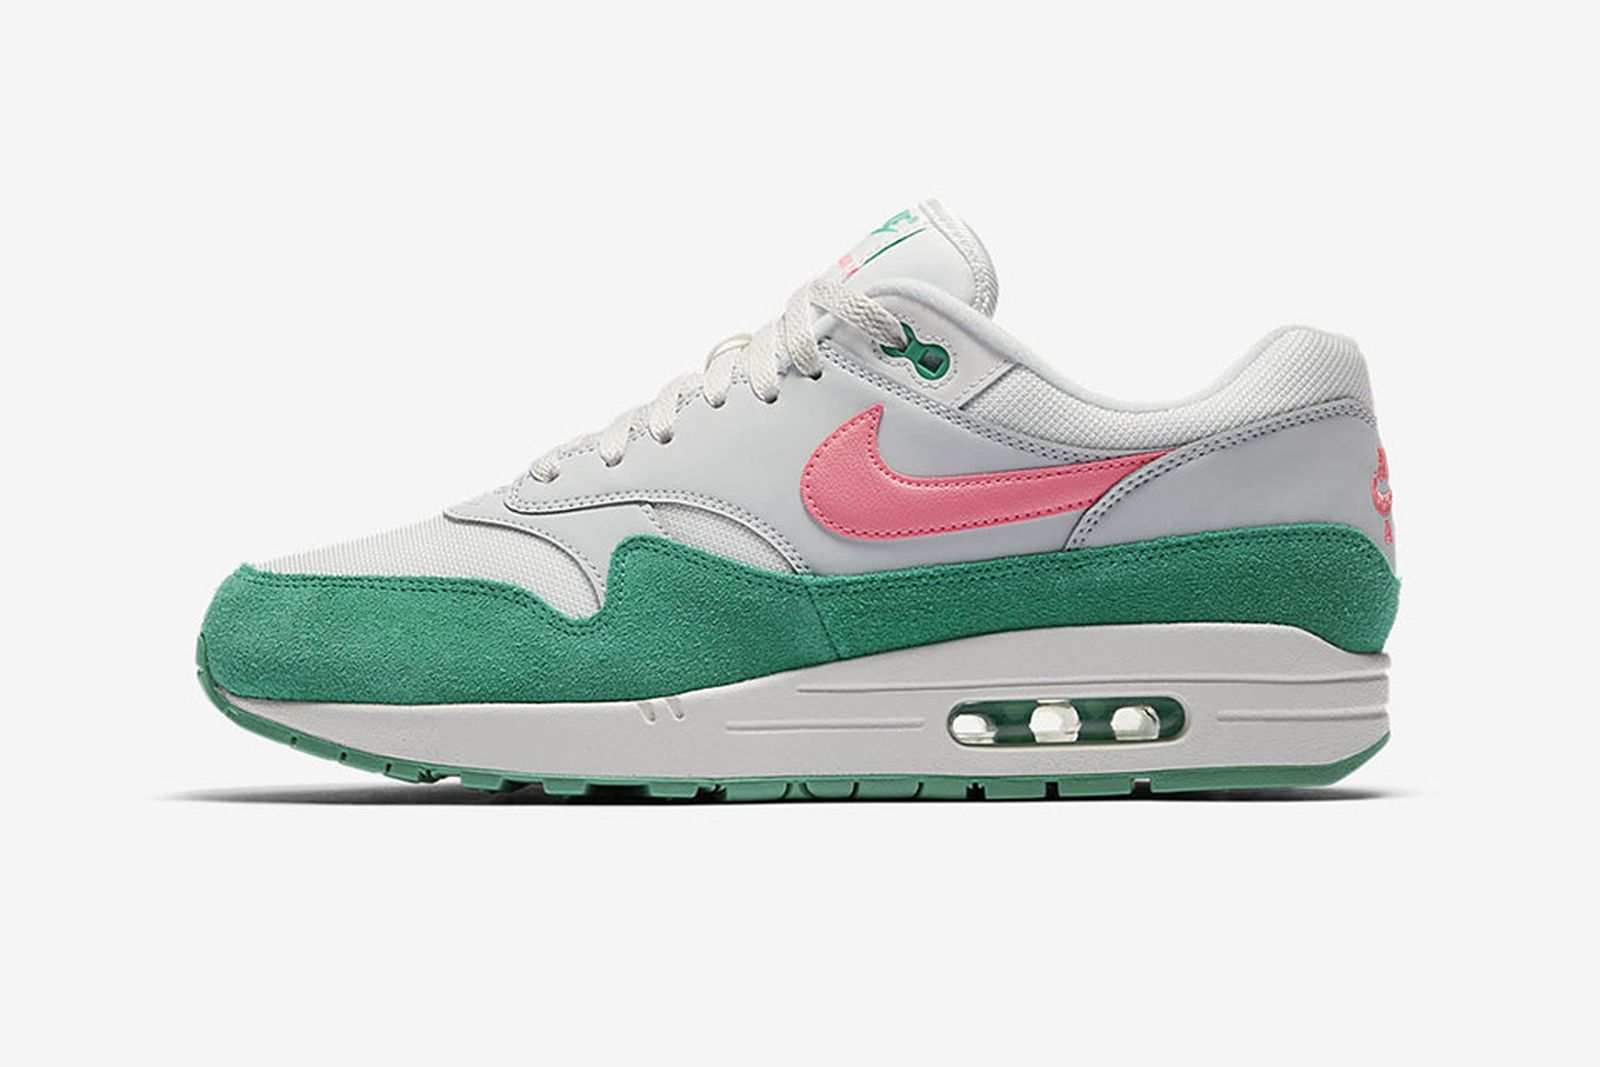 nike-air-max-miami-vibes-release-price-02